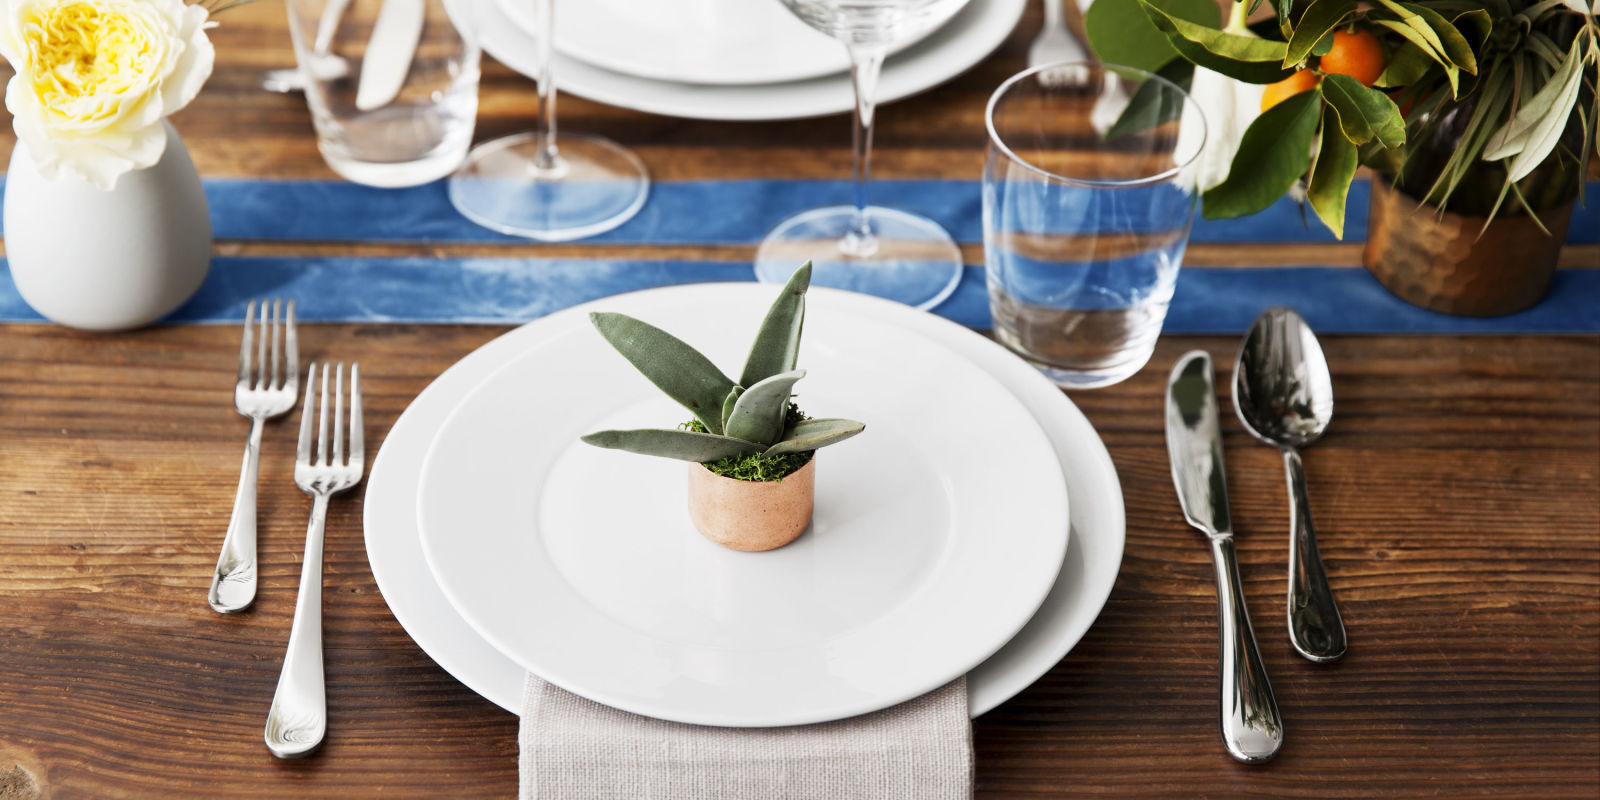 Restaurant table setting ideas - Tablescapes